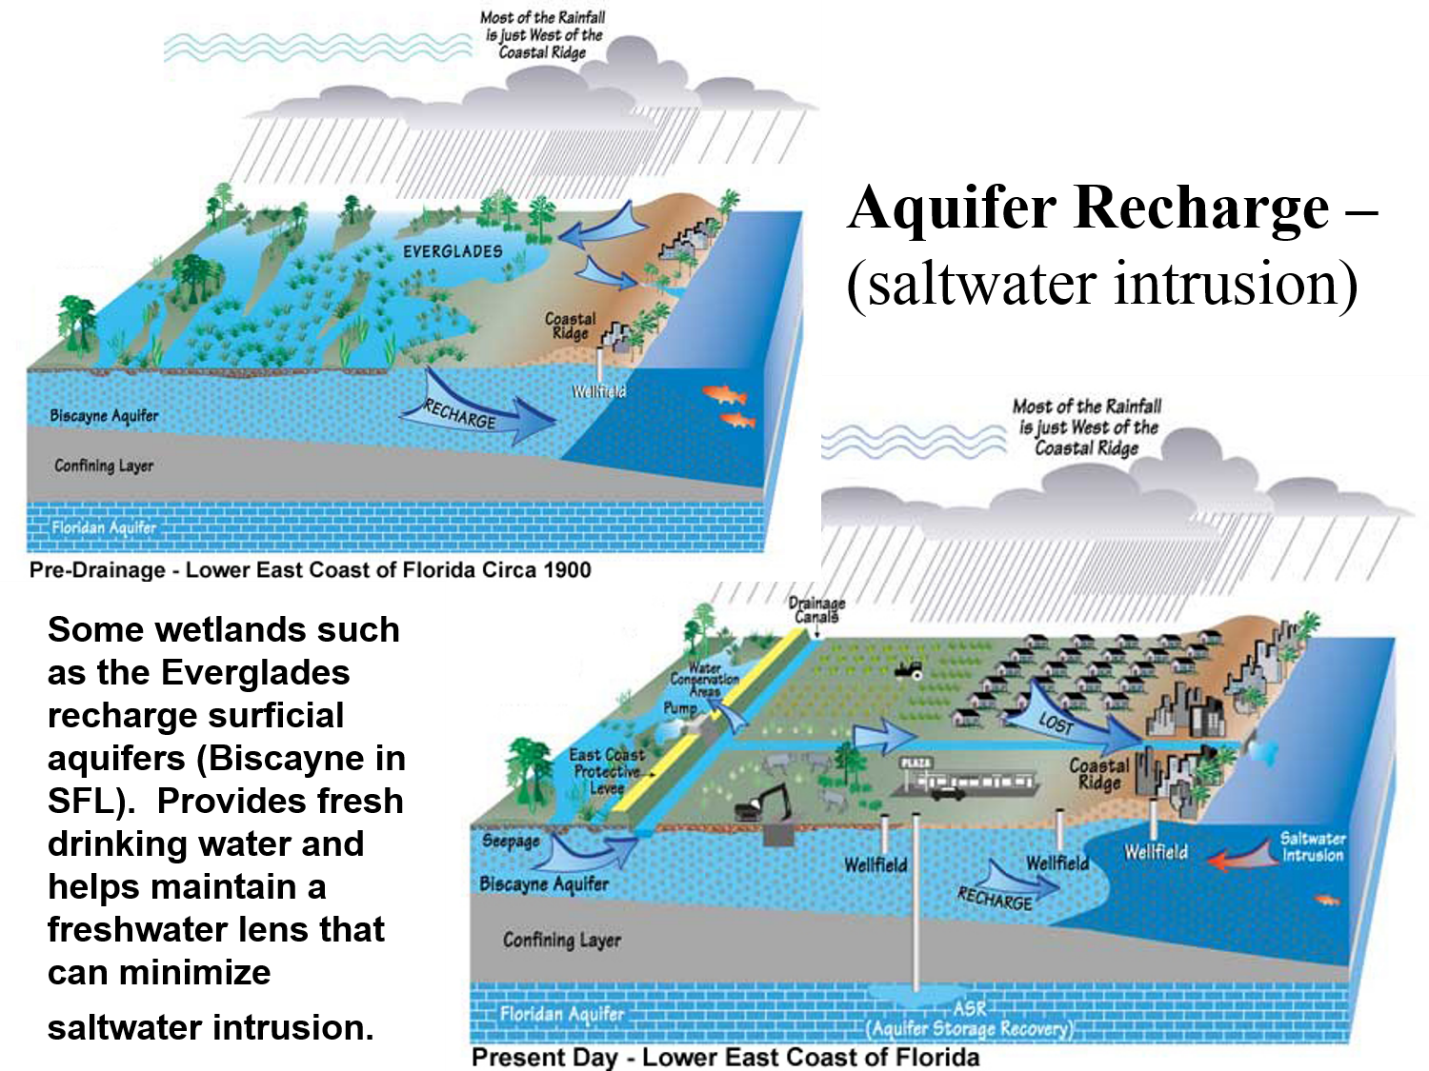 the composition importance and ecosystem of water in our planet Abiotic factors include things such as rocks,water,soil,light,etc the idea of the  ecosystem relates to the idea that all organisms in the environment are engaged   and the substances of their material composition remain after death to be  utilized in other ways  it provides important nutrients for the plants in an  ecosystem.